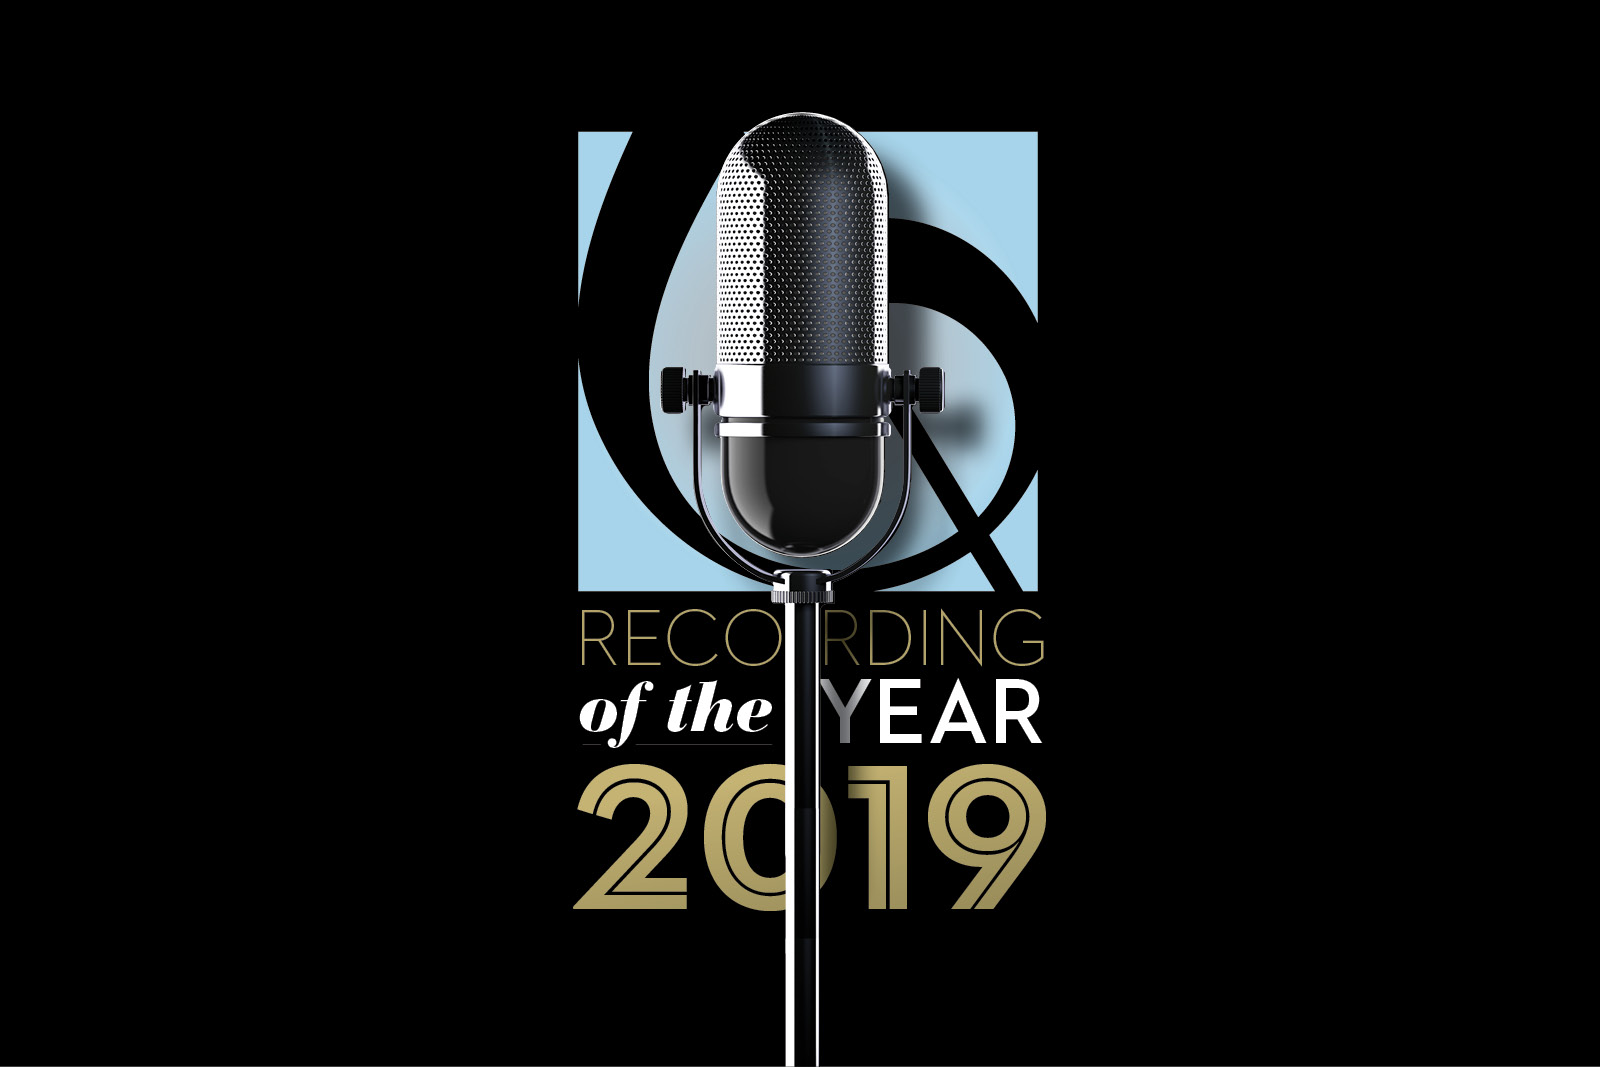 Recording of the Year